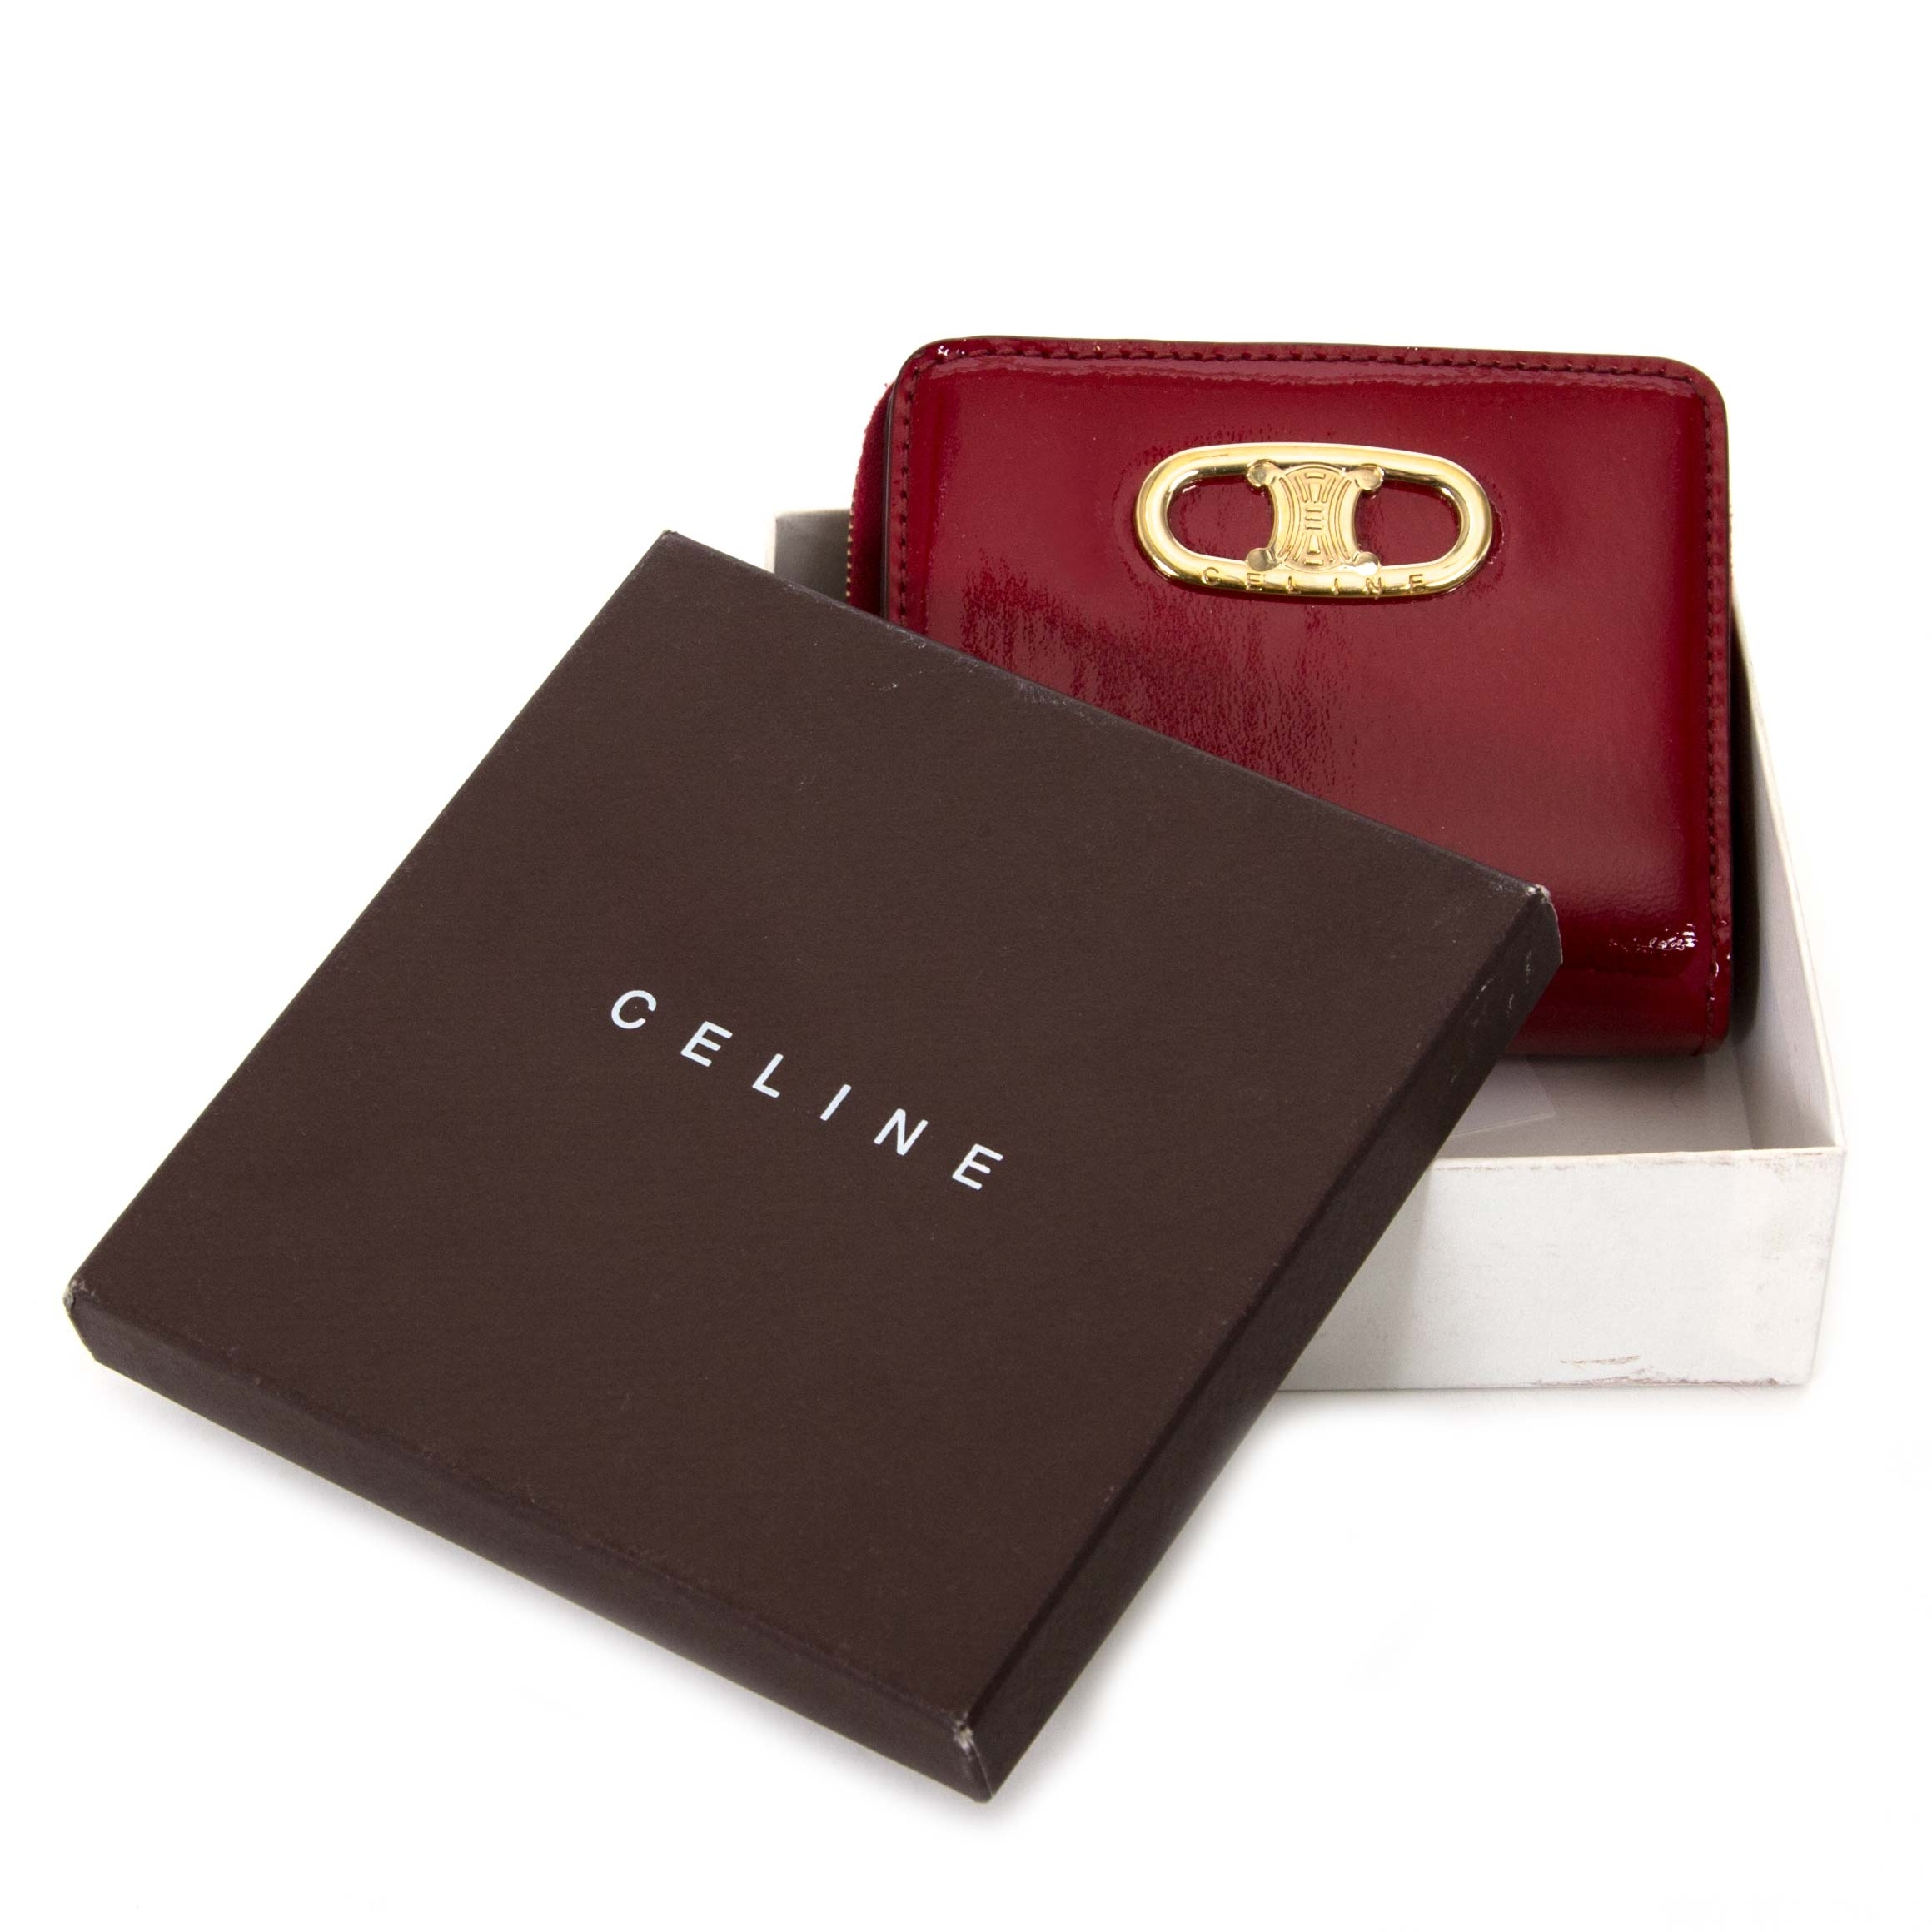 céline ruby patent leather zipped multifunction wallet now for sale at labellov vintage fashion webshop belgium